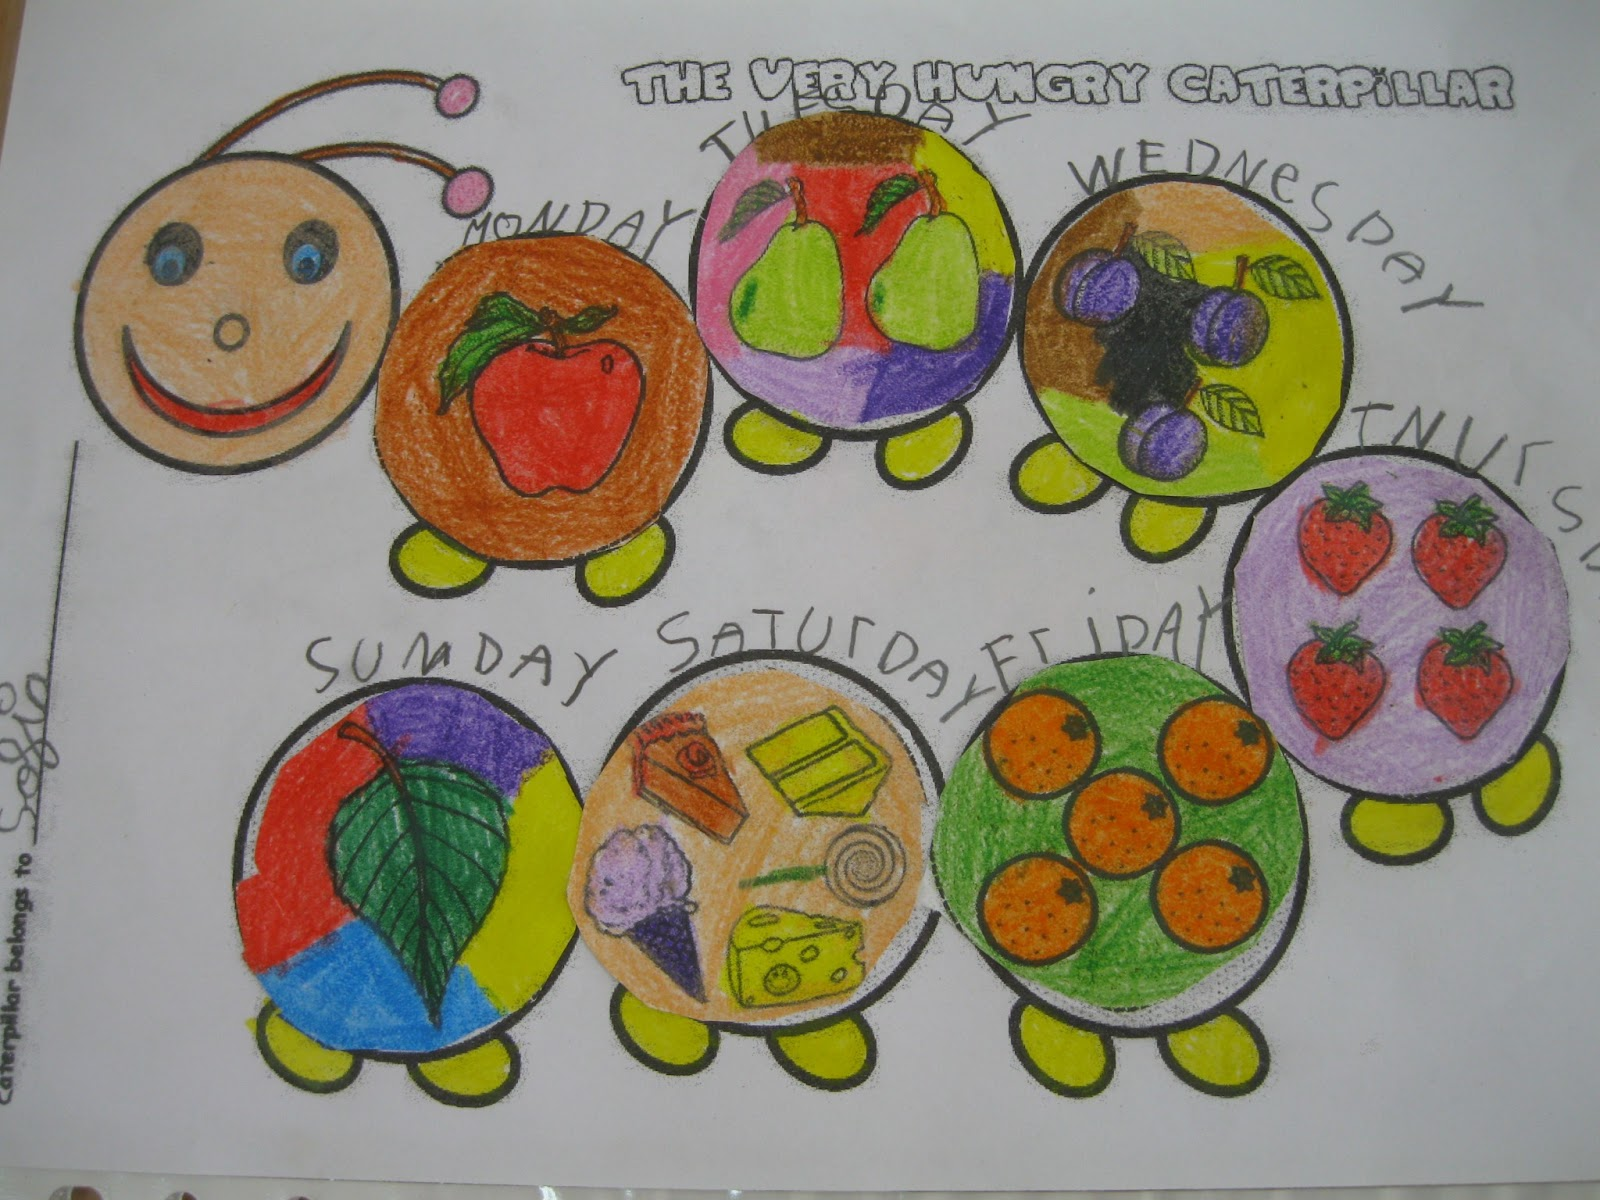 Sonia S Pocket Full Of Kids Pictures About The Very Hungry Caterpillar